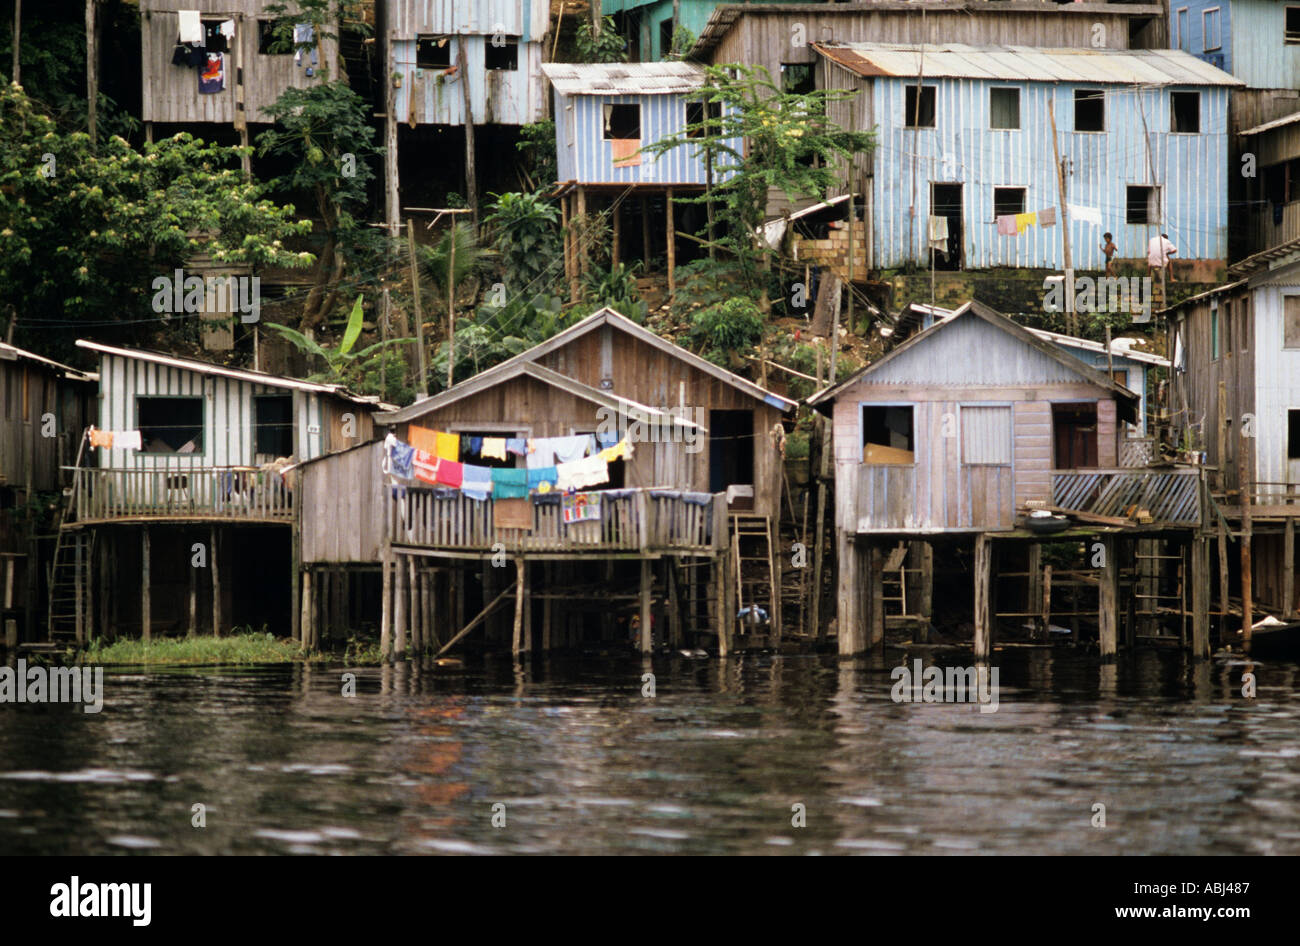 Brazilian Homes Manaus Brazil Poor Shanty Town Housing Houses Built On